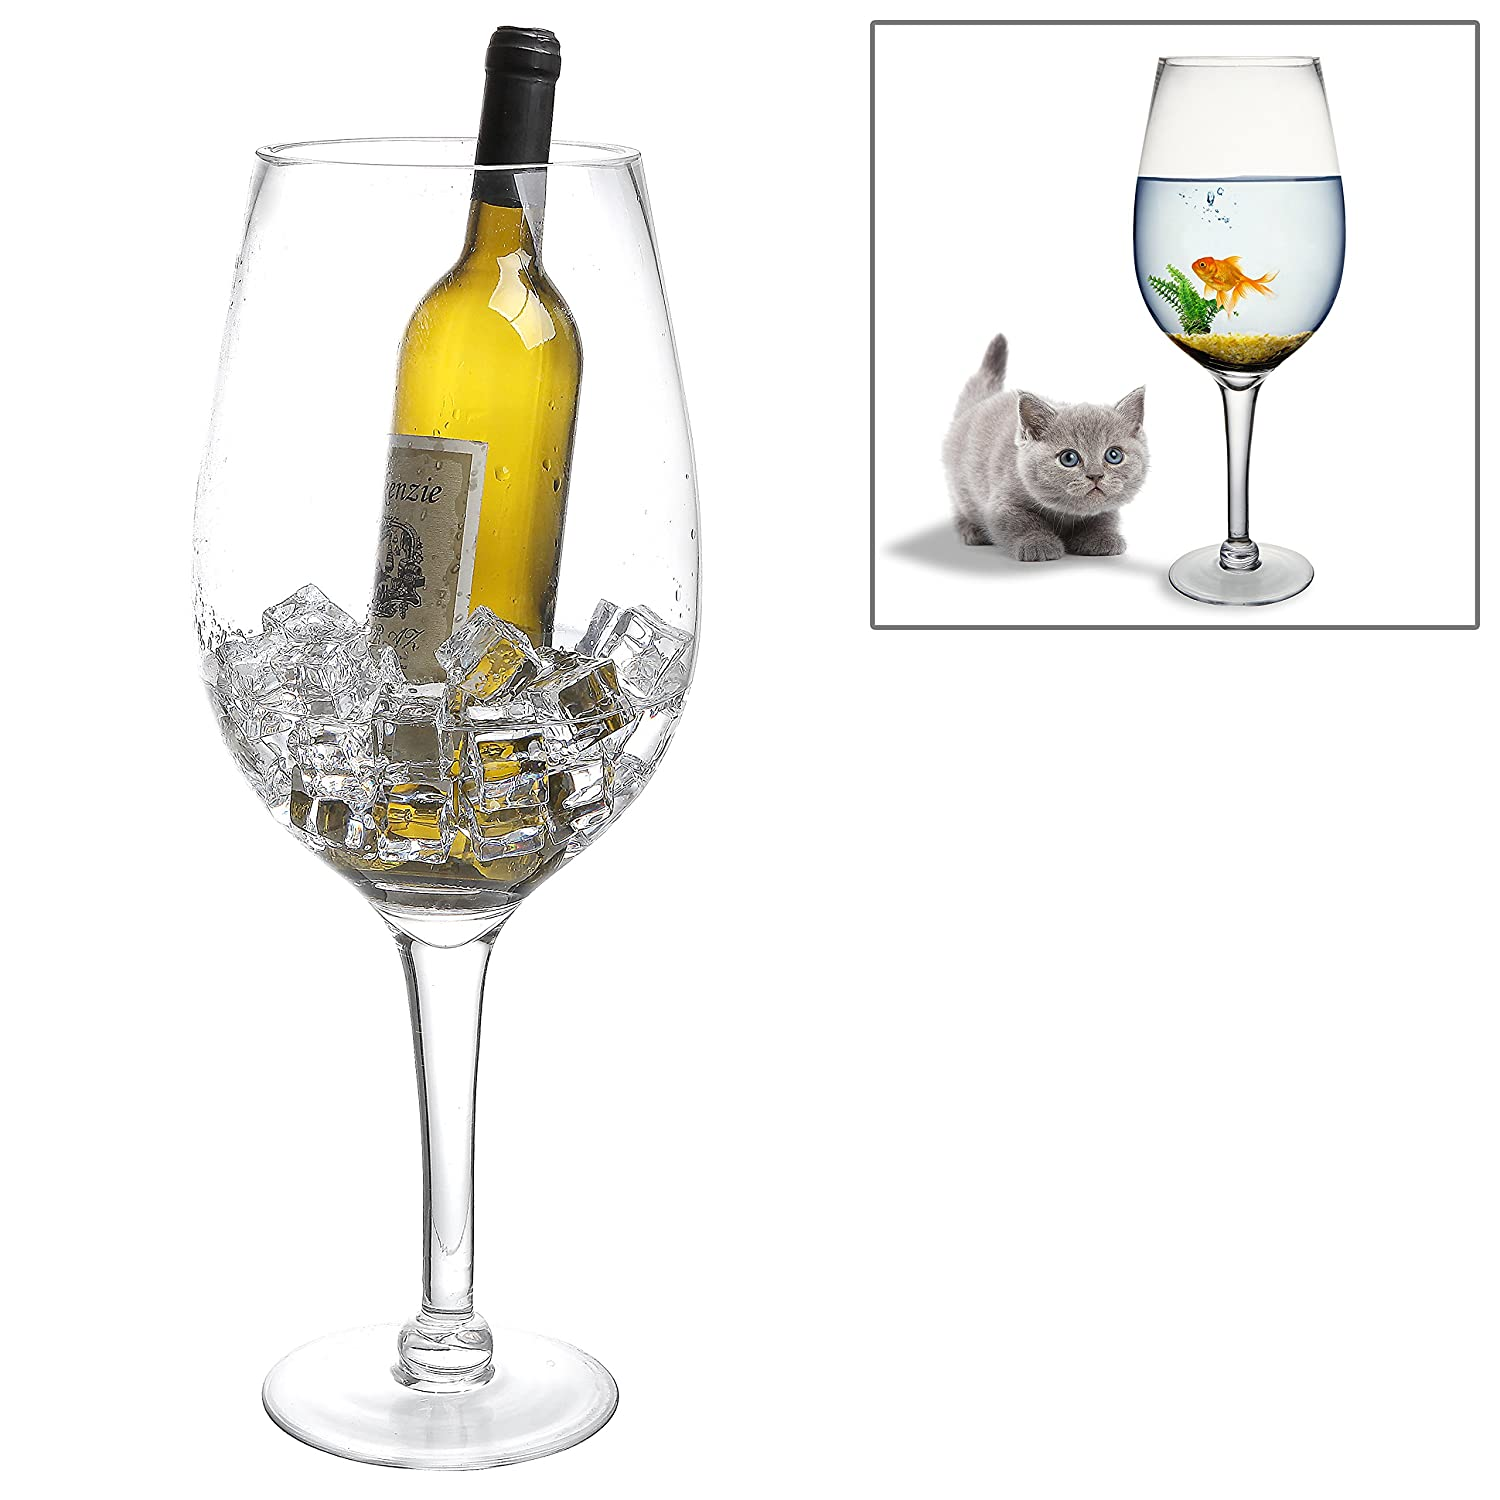 wine down bar ki cup decor in rack home display item decorative glasses steel goblets stainless holder from upside stand racks hanging